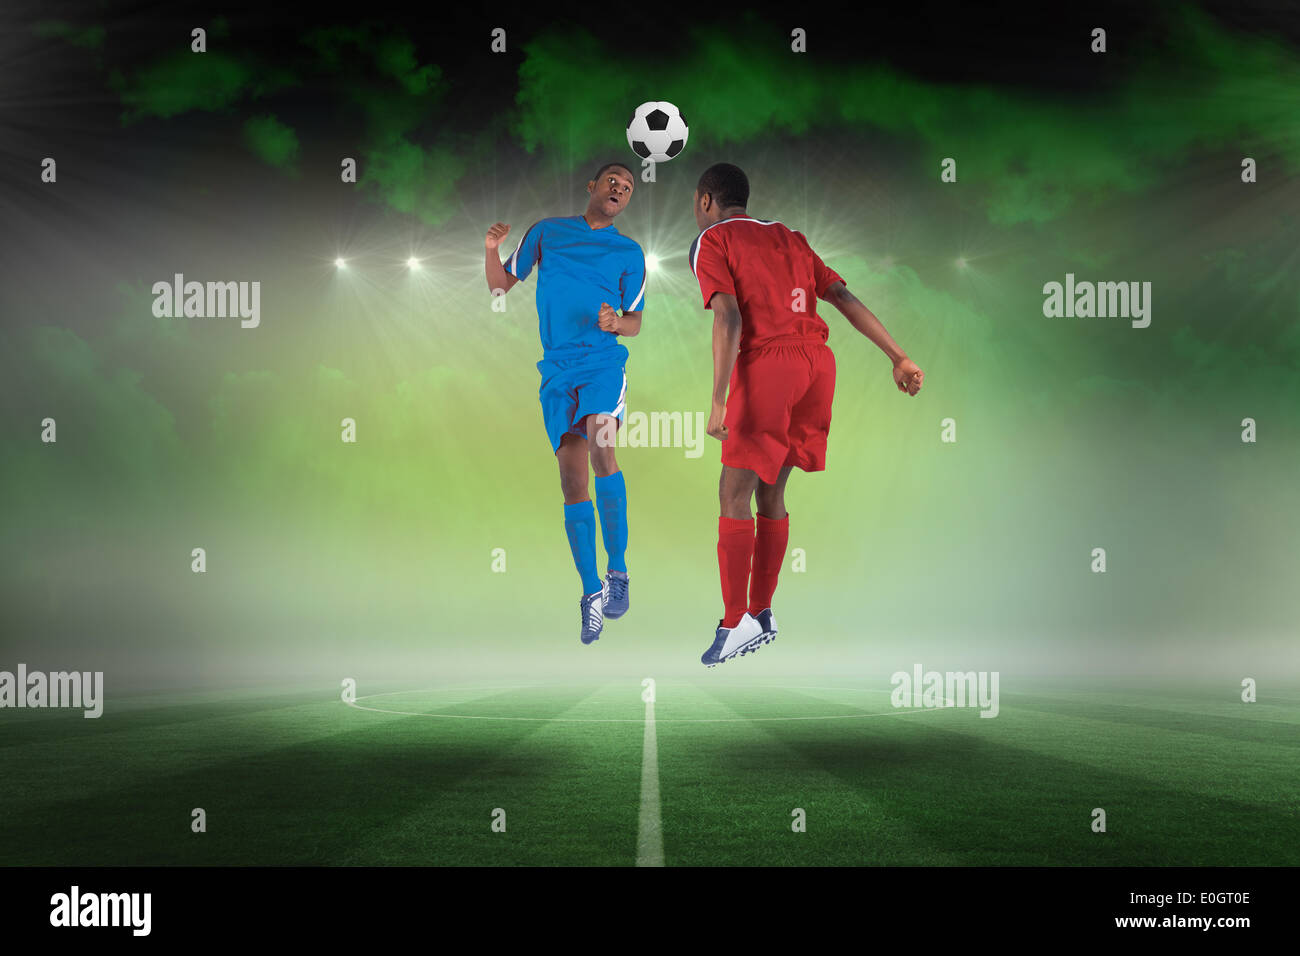 Football players tackling for the ball - Stock Image